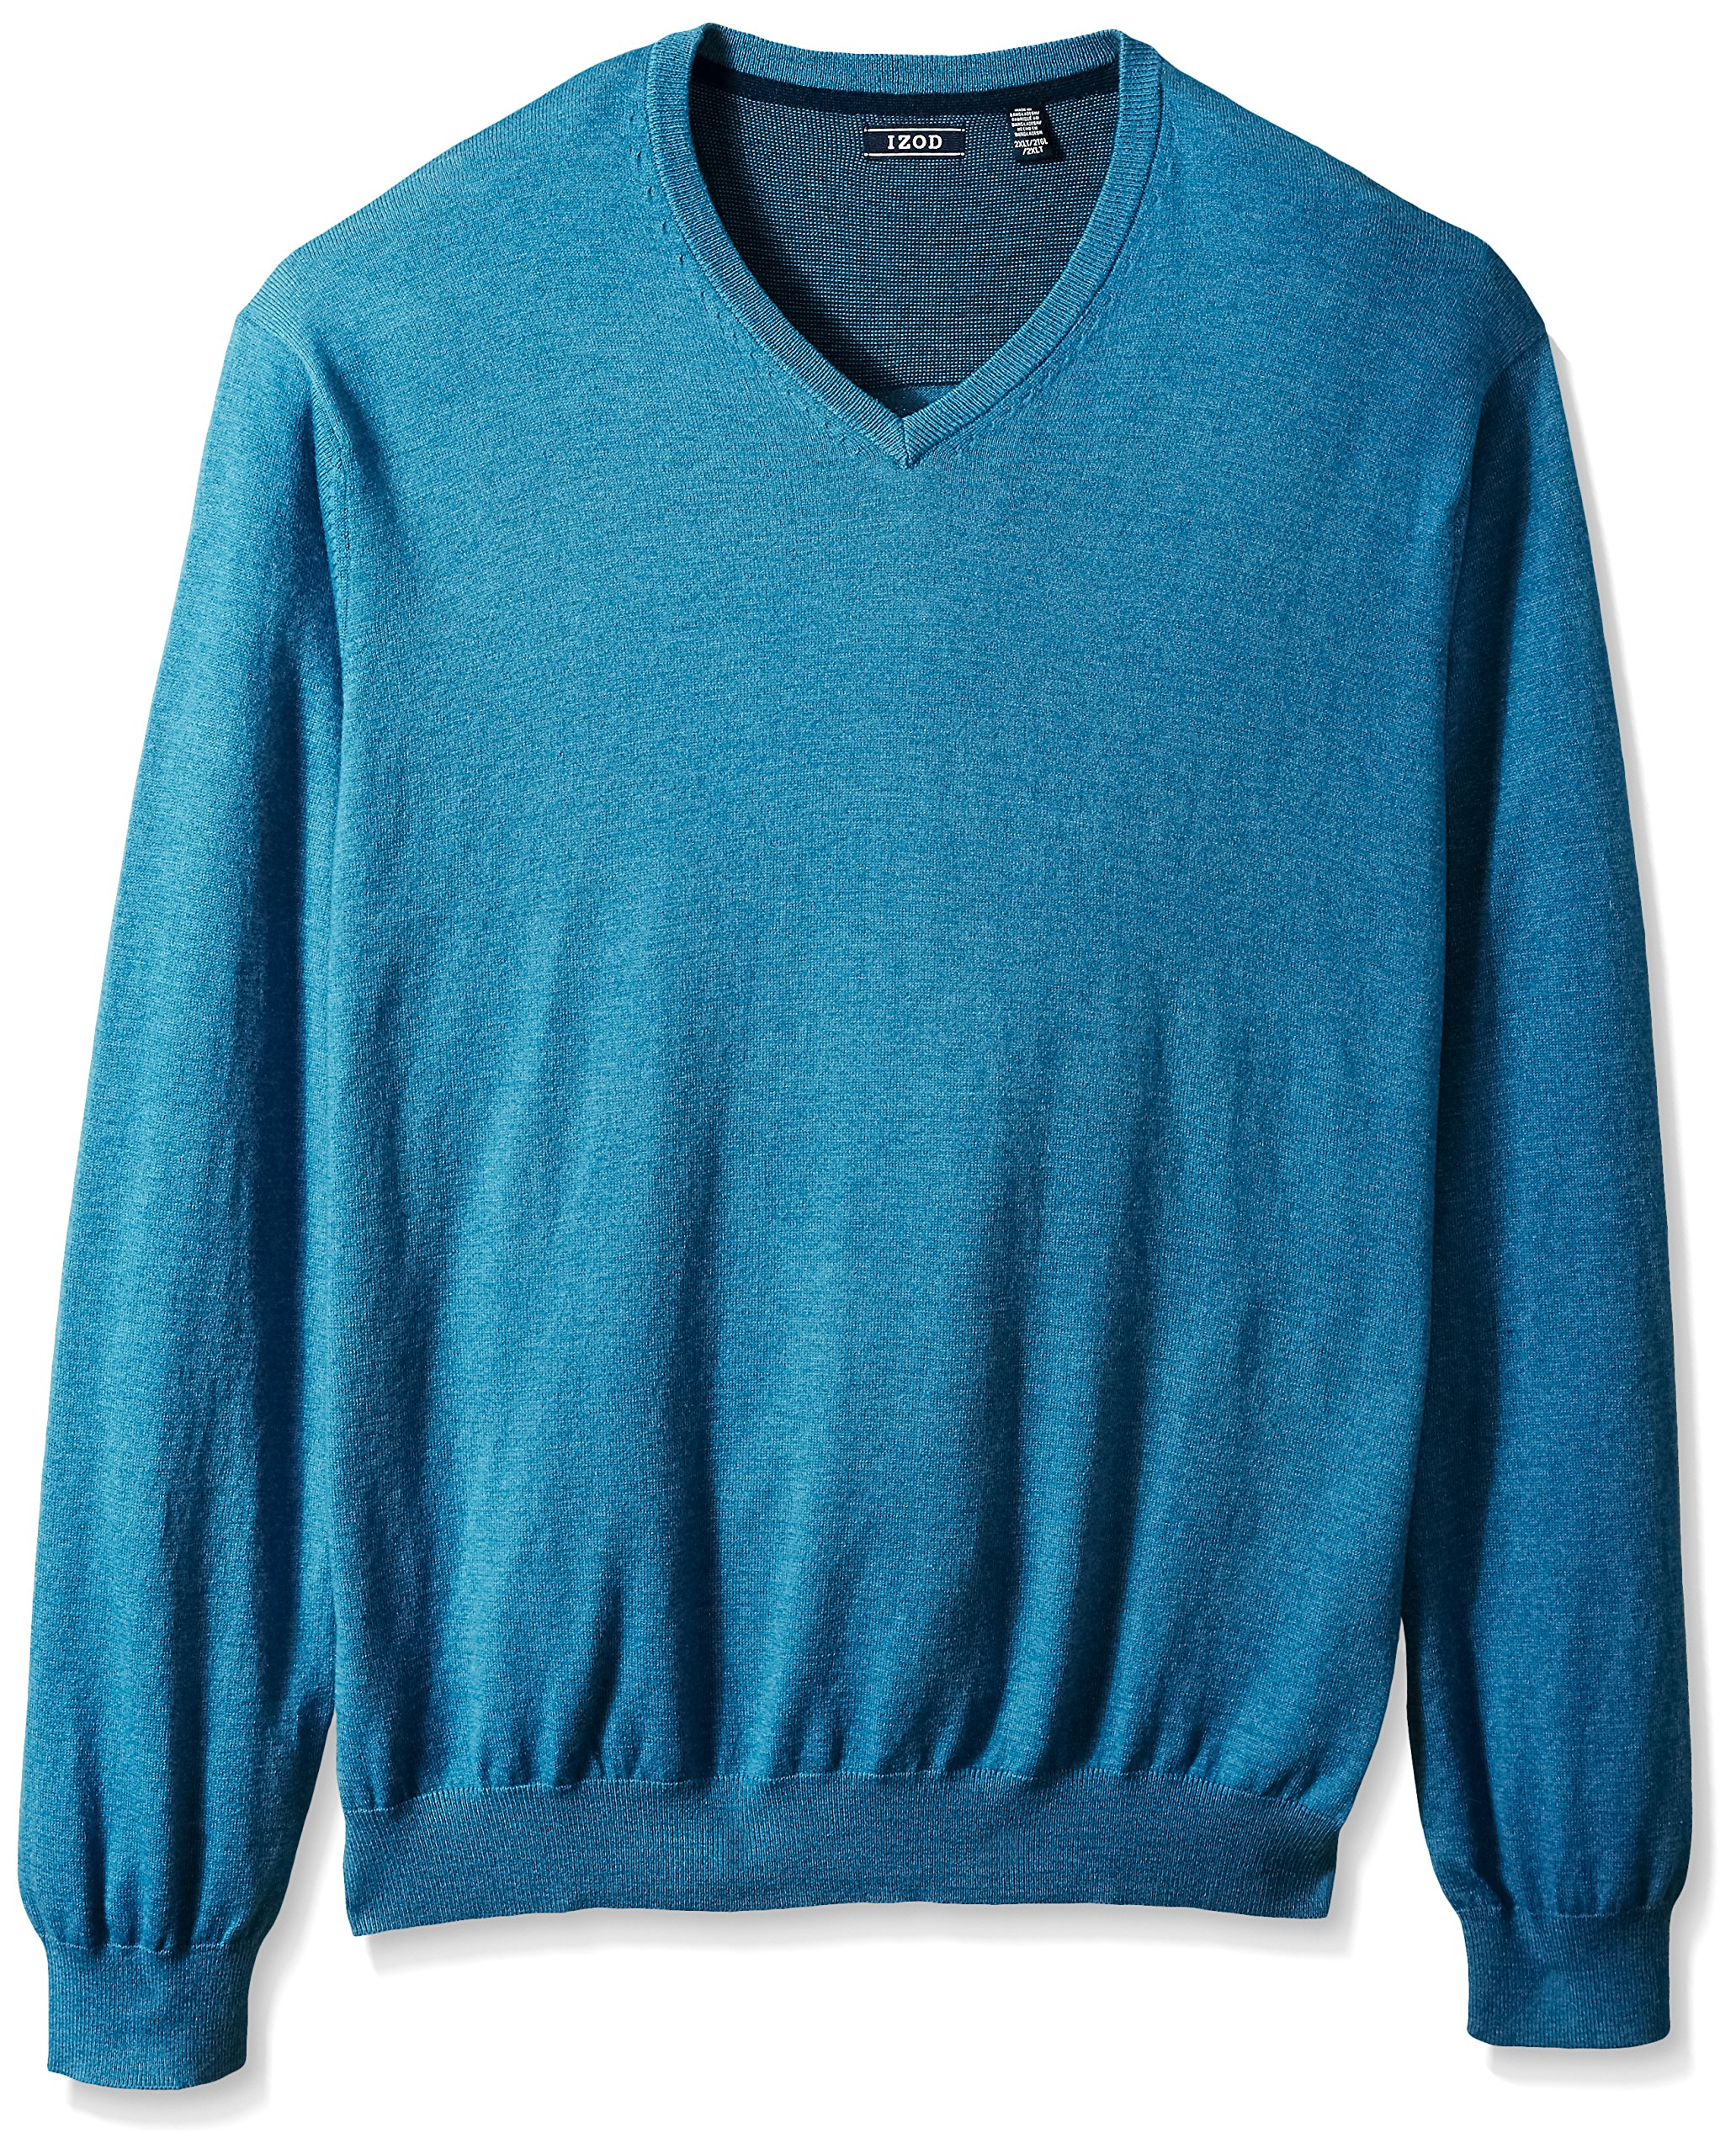 IZOD Men's Big and Tall Fine Gauge Solid V-Neck Sweater, Federal Blue Heather, 3X-Large Tall